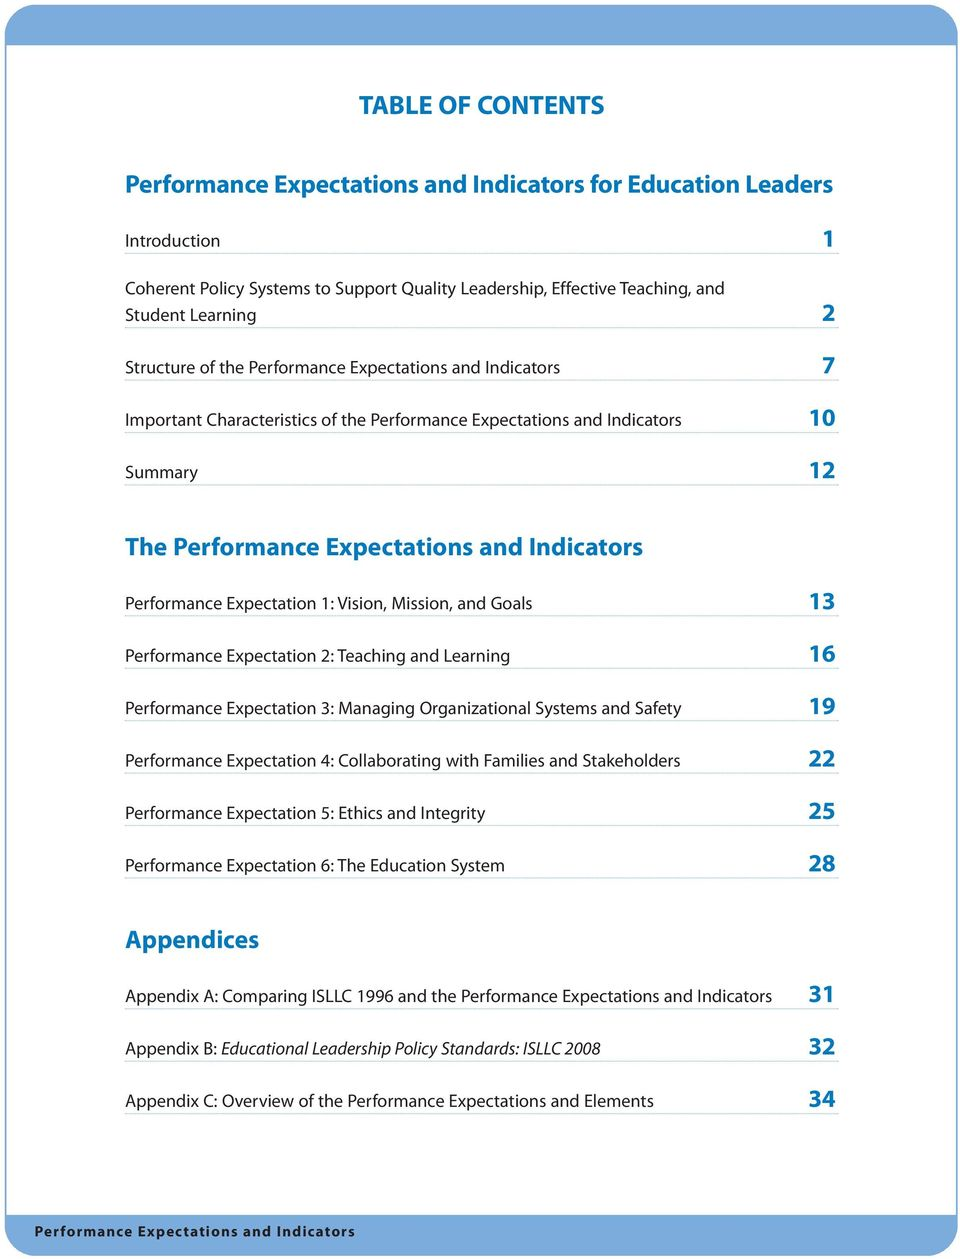 Performance Expectation 1: Vision, Mission, and Goals 13 Performance Expectation 2: Teaching and Learning 16 Performance Expectation 3: Managing Organizational Systems and Safety 19 Performance